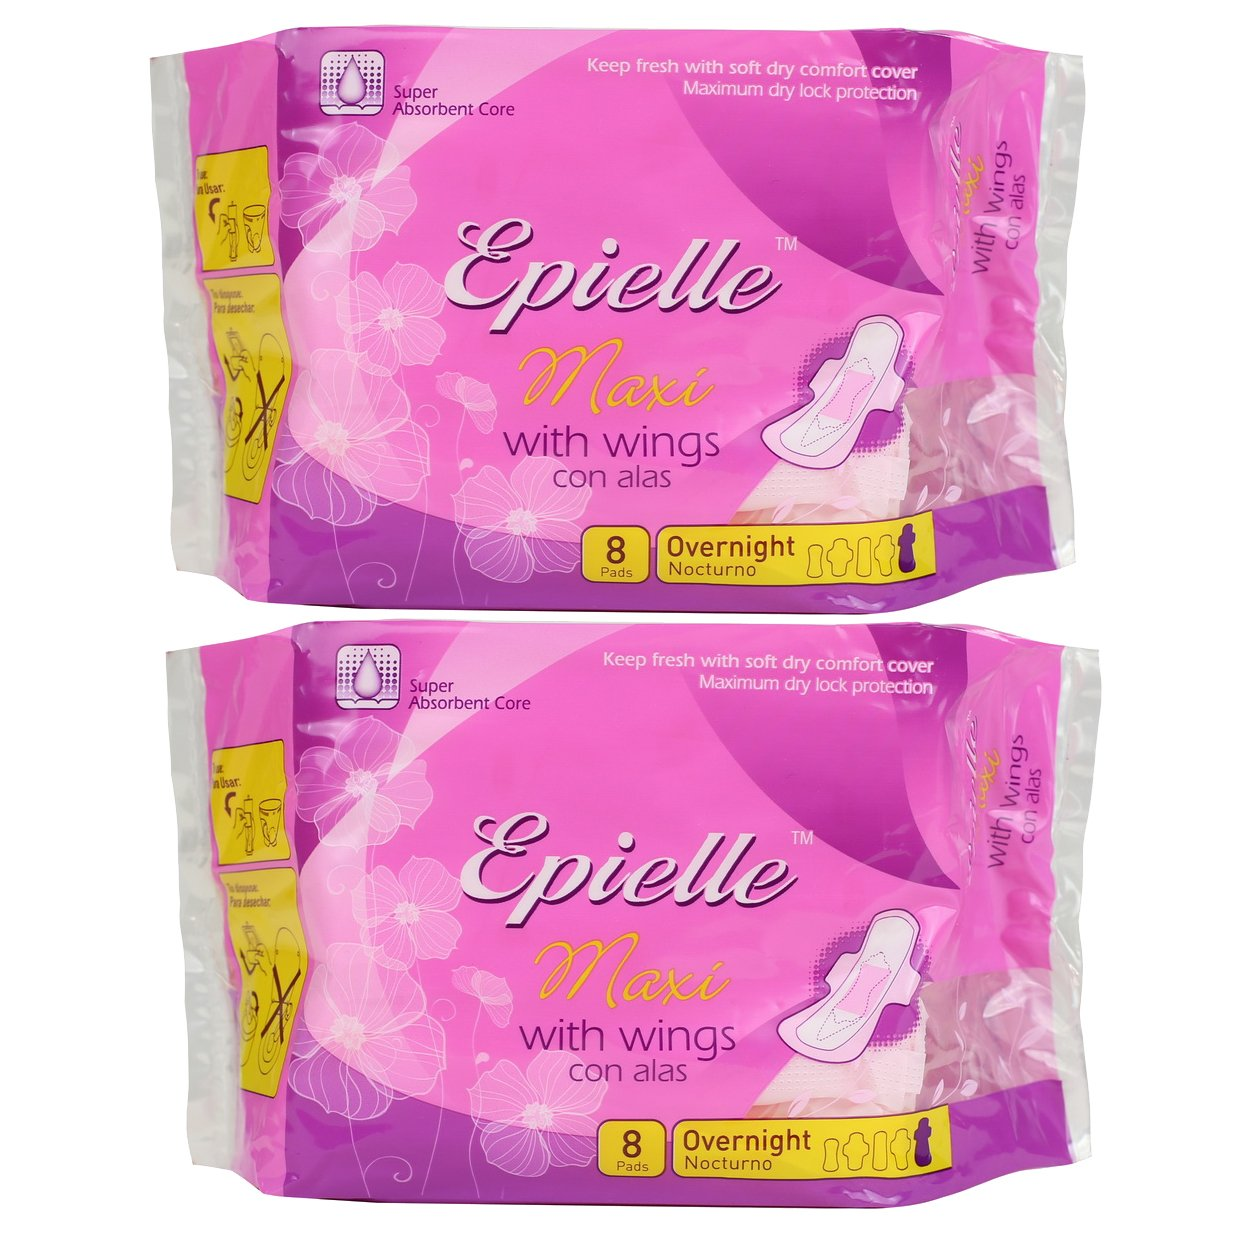 Amazon.com: Epielle Maxi with Wings Feminine Care-Heavy-8ct (2 Pack): Health & Personal Care